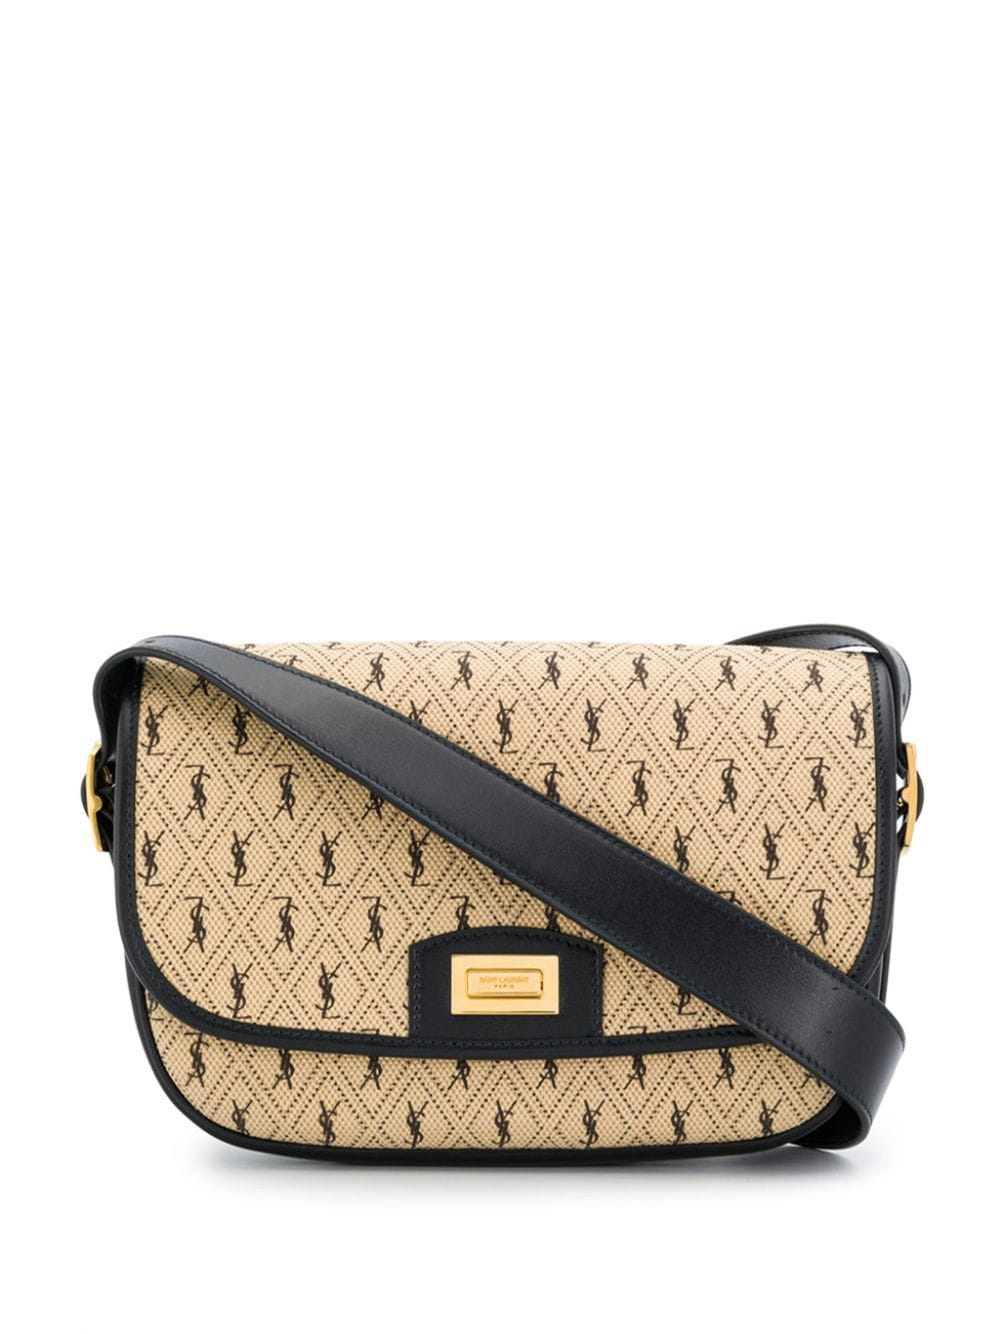 Monogram all over canvas satchel bag by Saint Laurent, available on farfetch.com for $1555 Kaia Gerber Bags Exact Product